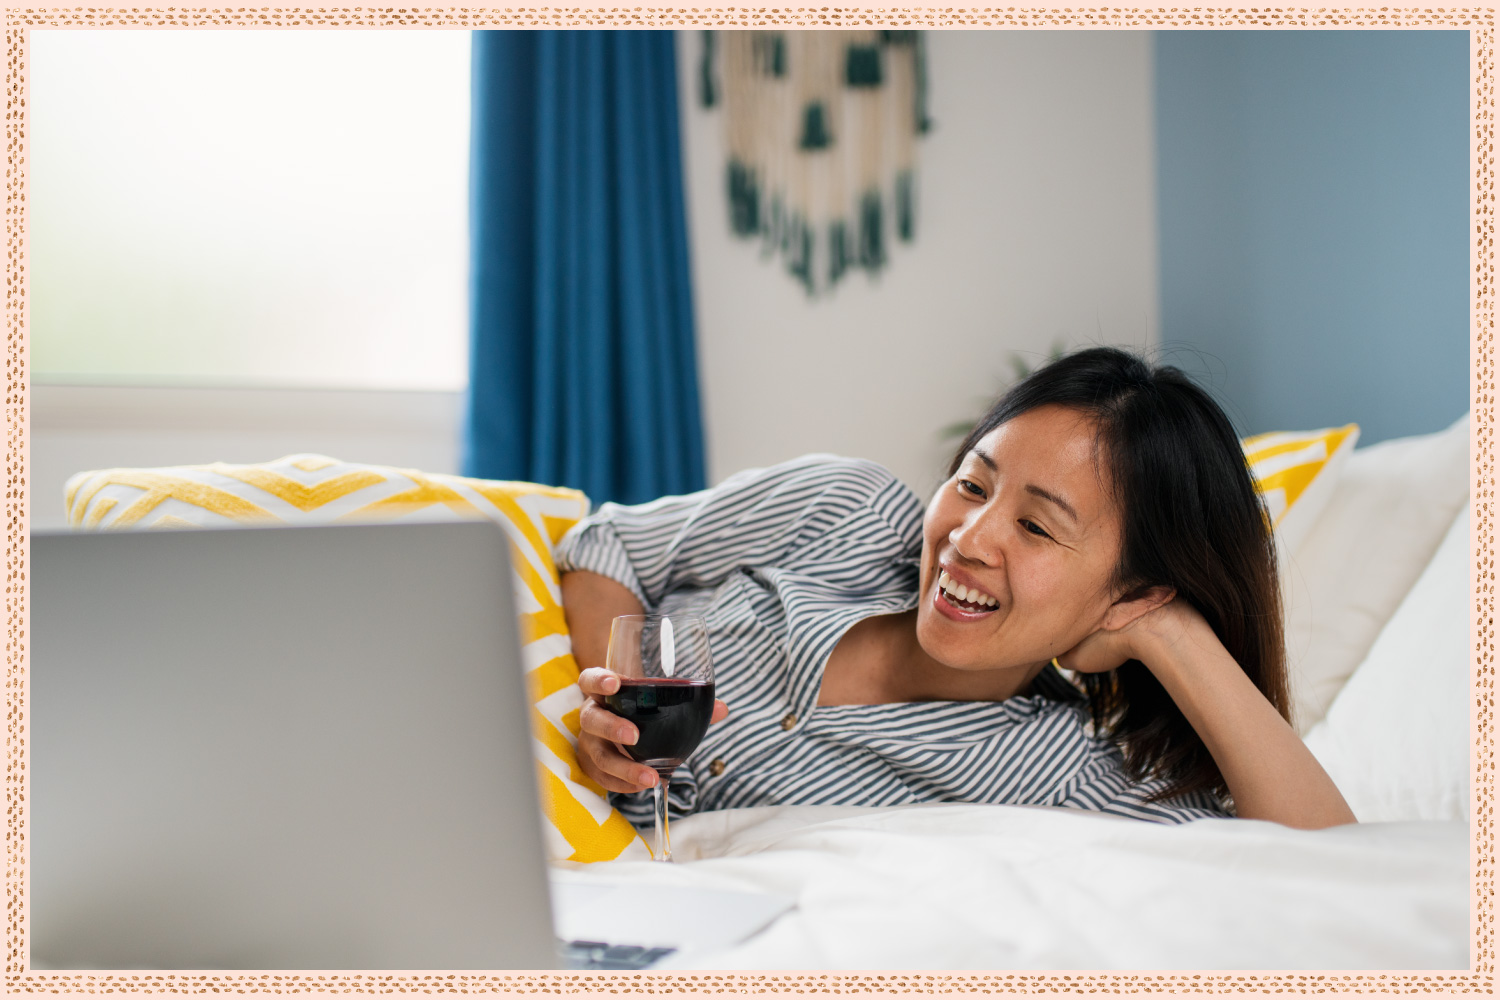 women in bed with a glass of red wine smiling at the laptop in front of her